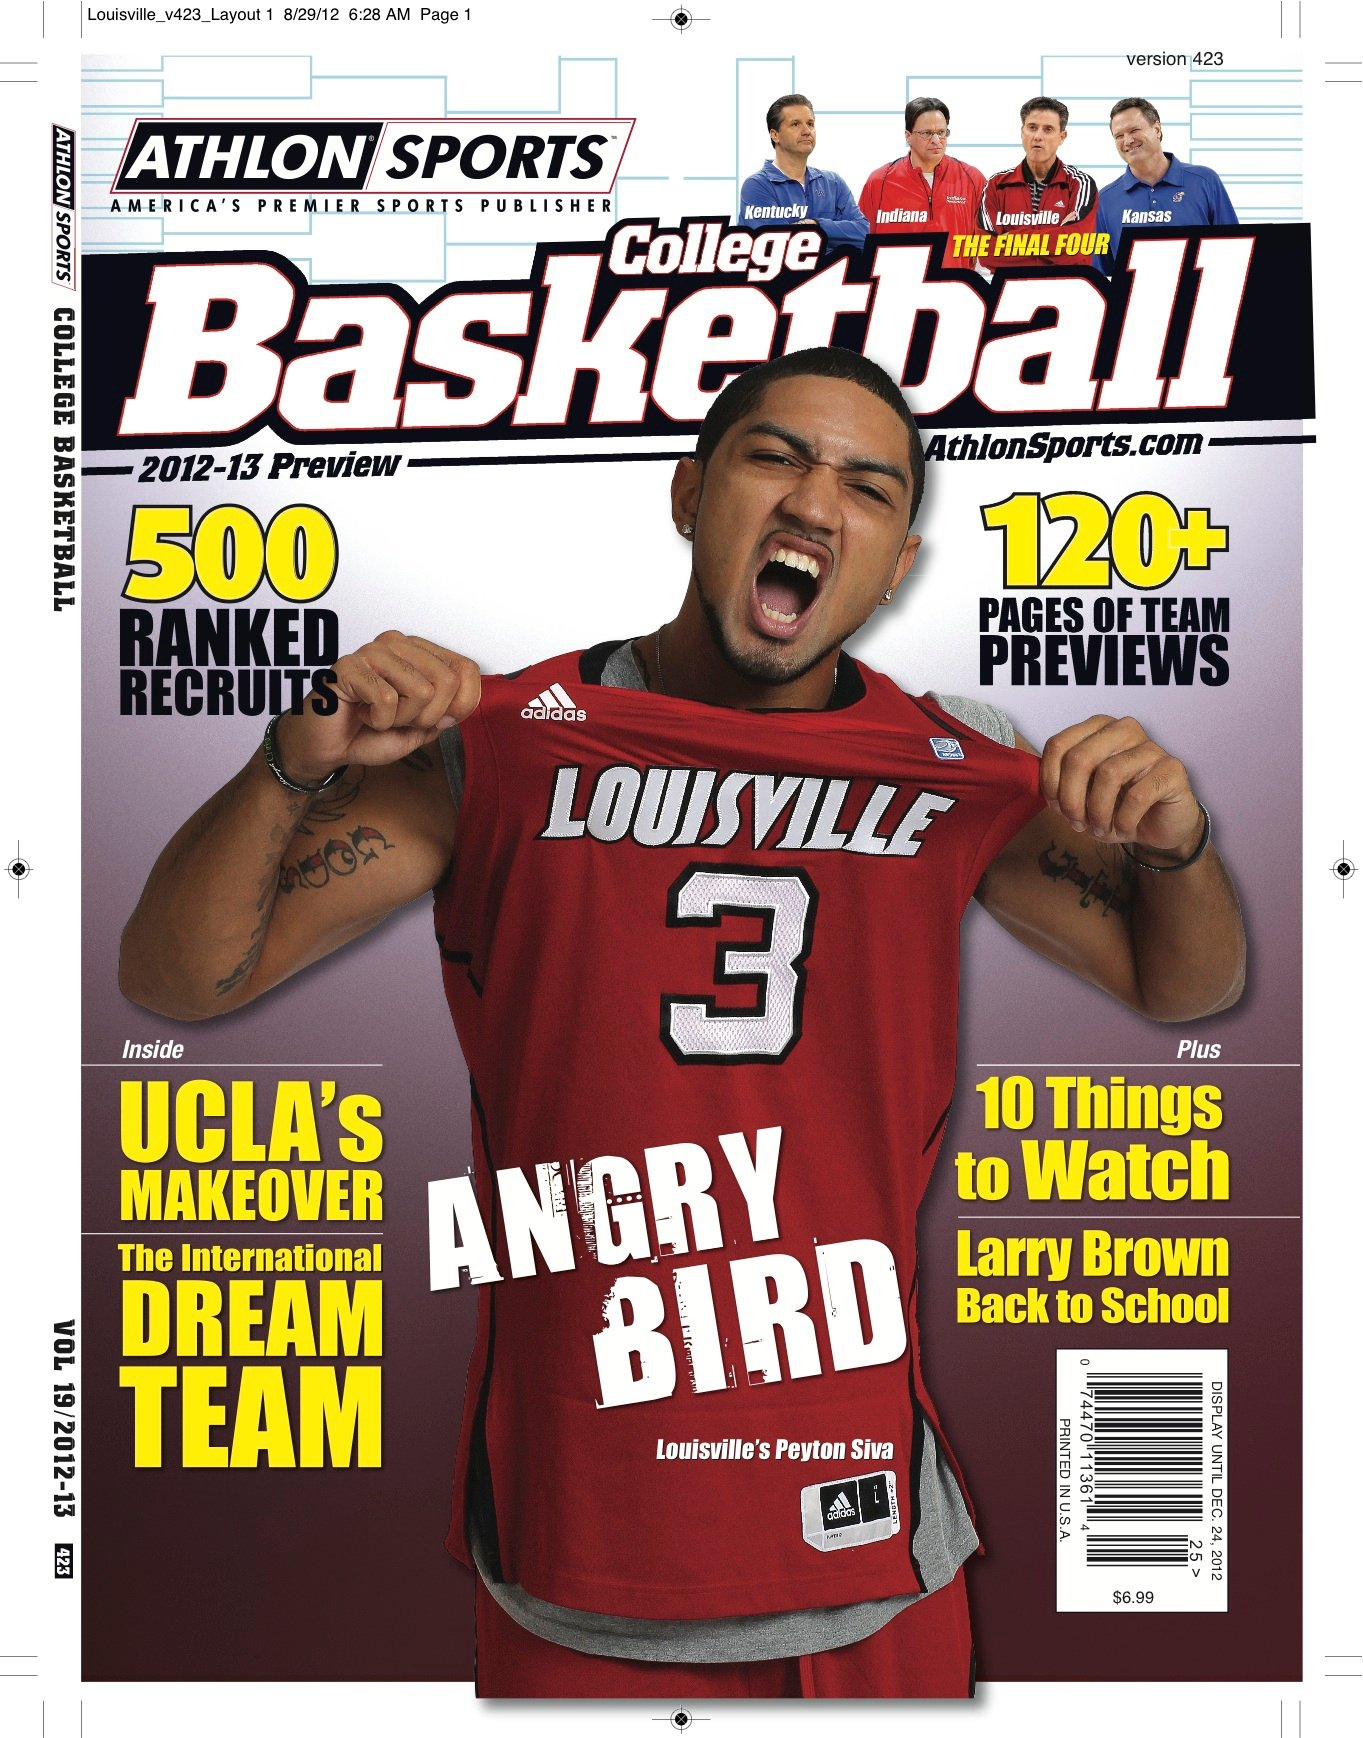 Louisville senior Peyton Siva is featured on the cover of the local edition of Athlon's Sports College Basketball Yearbook.